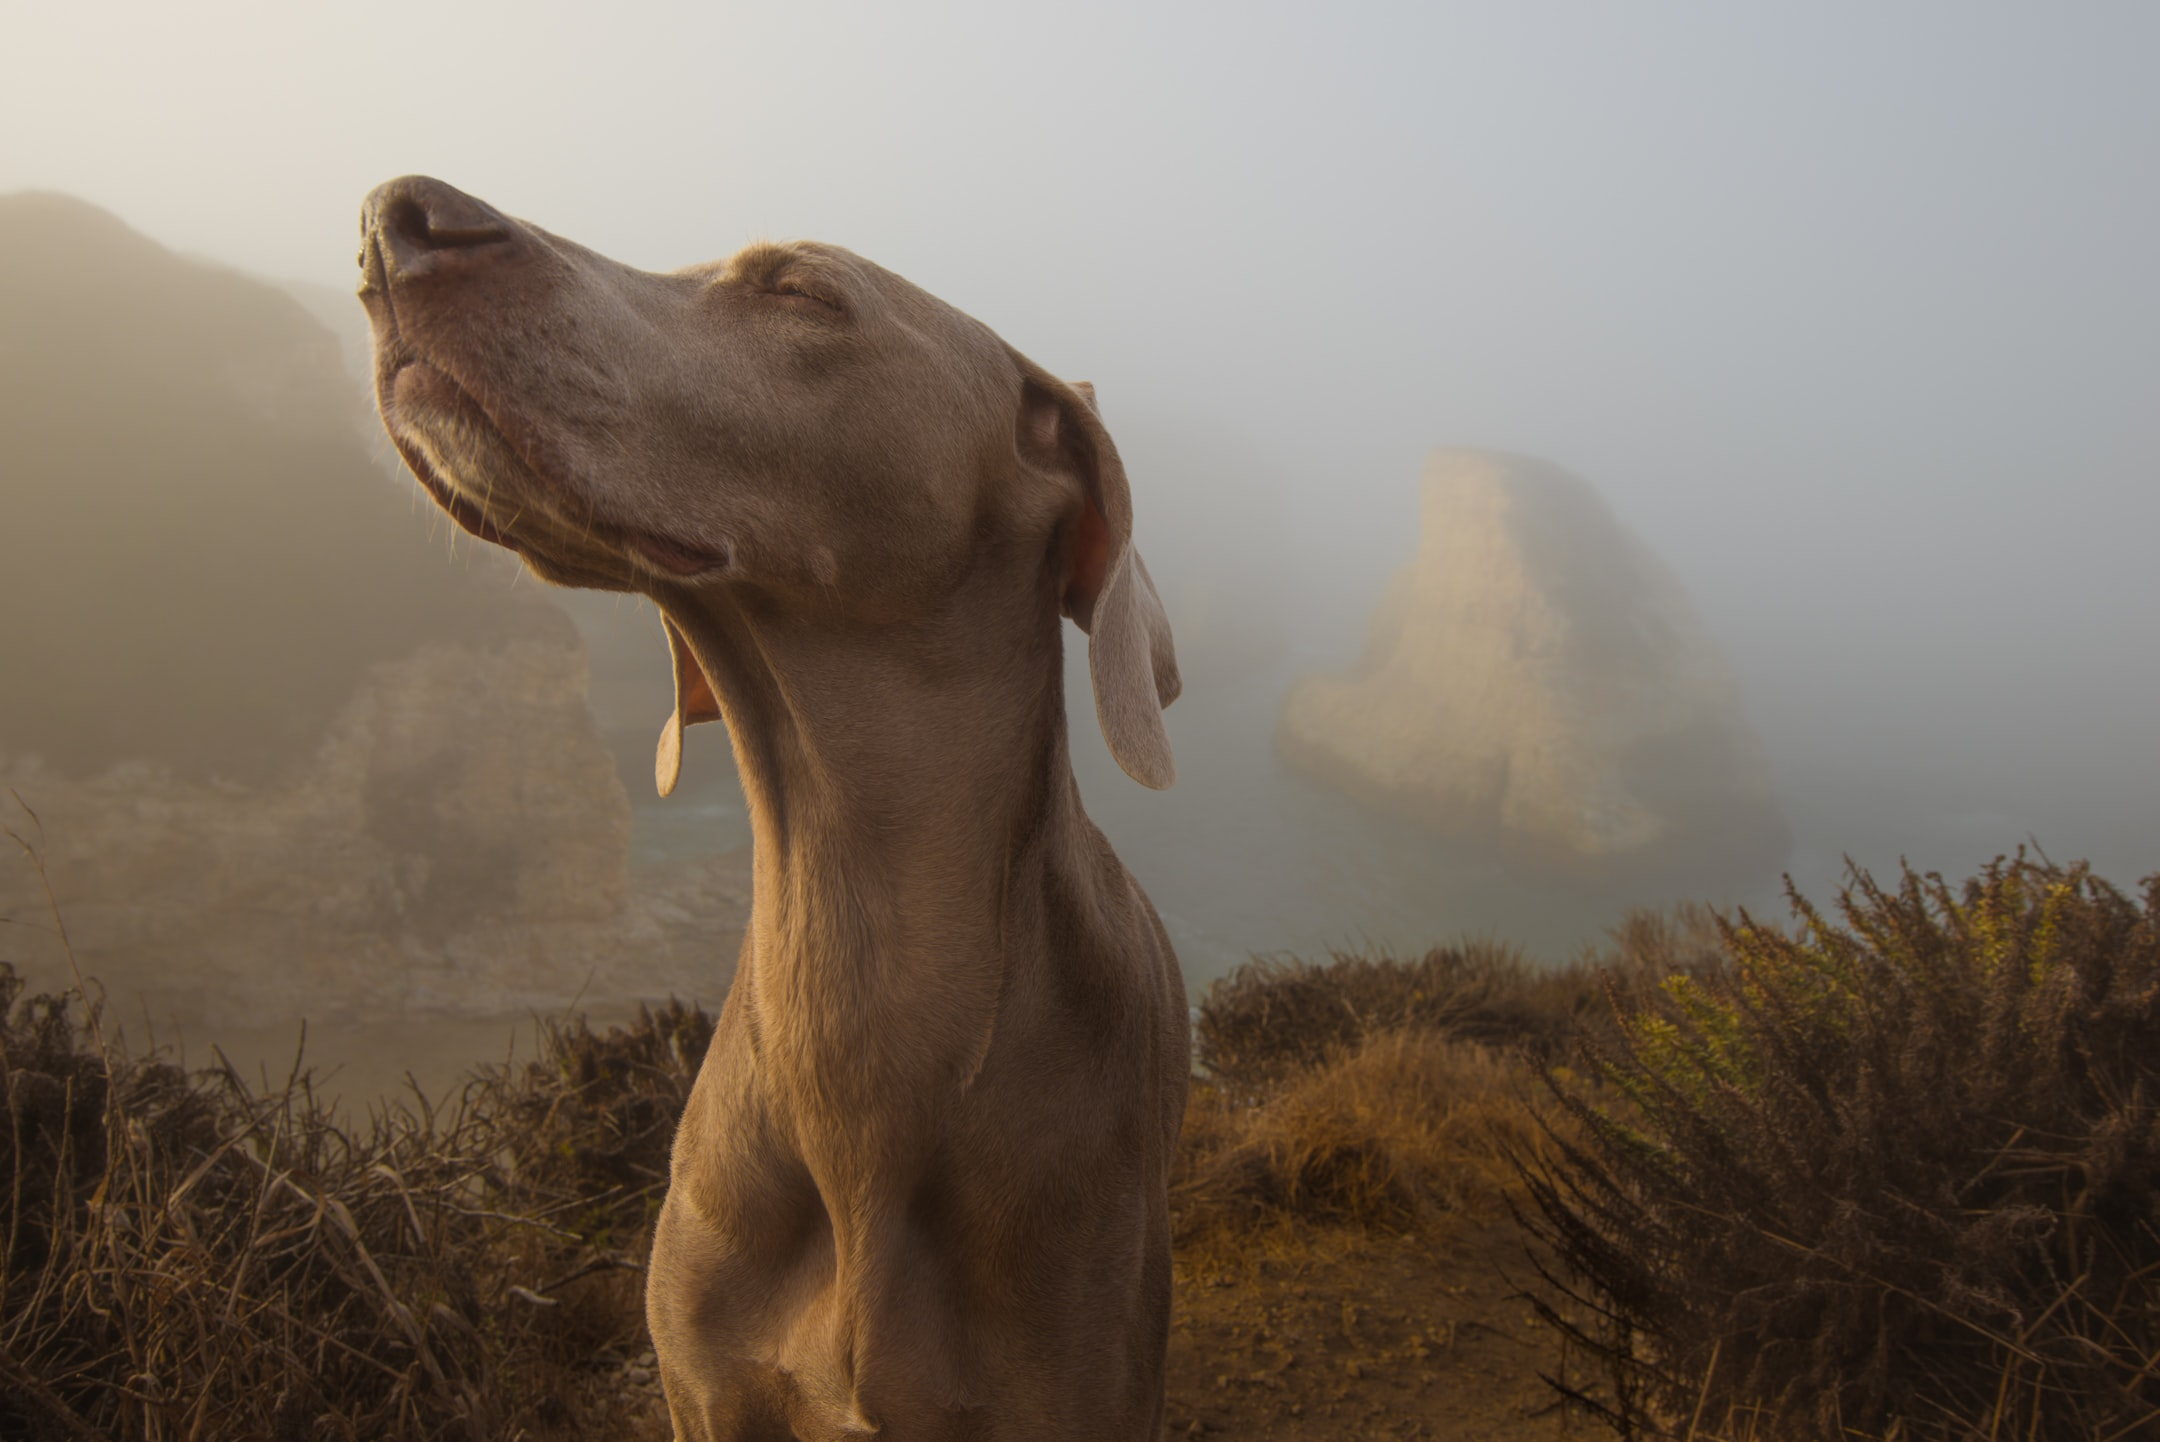 dog smelling the air Photo by Jeff Nissen on Unsplash